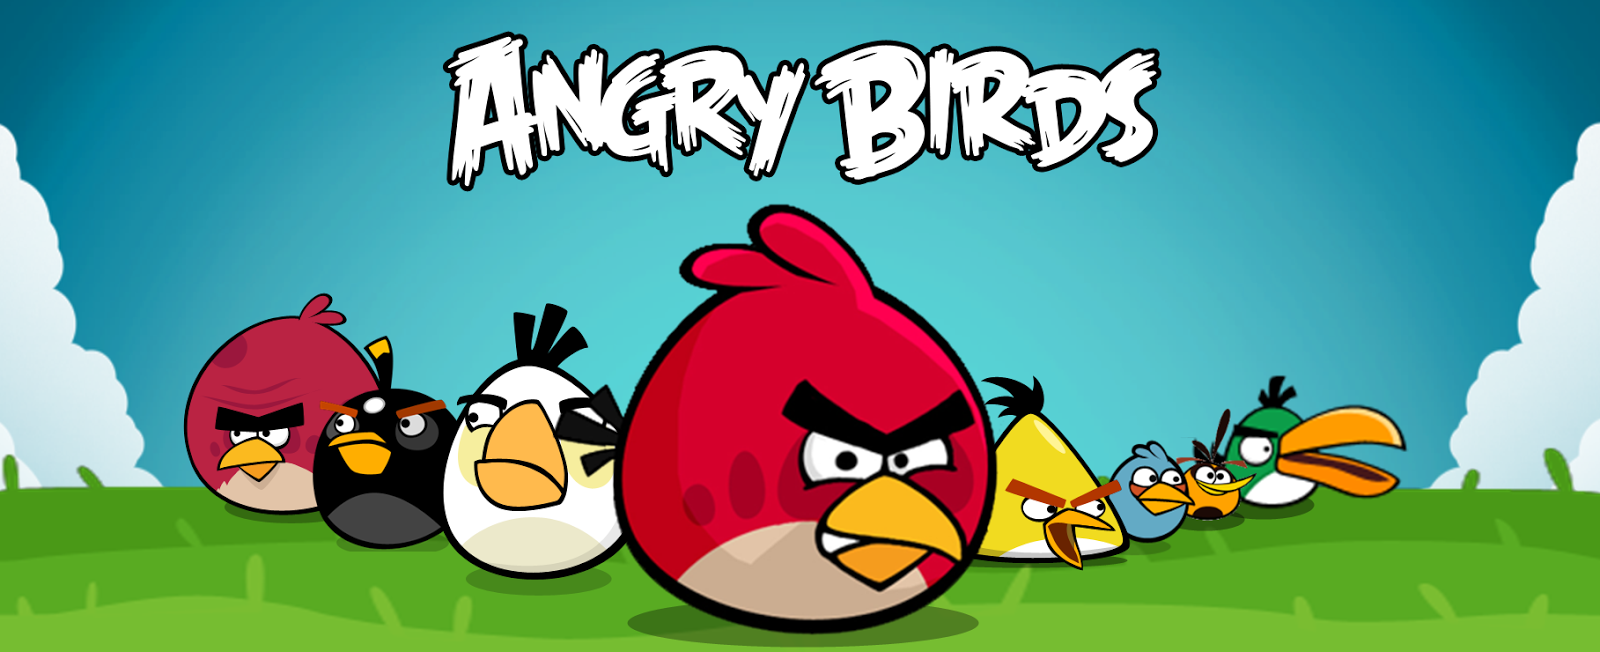 Angry Birds Gratis Spiele